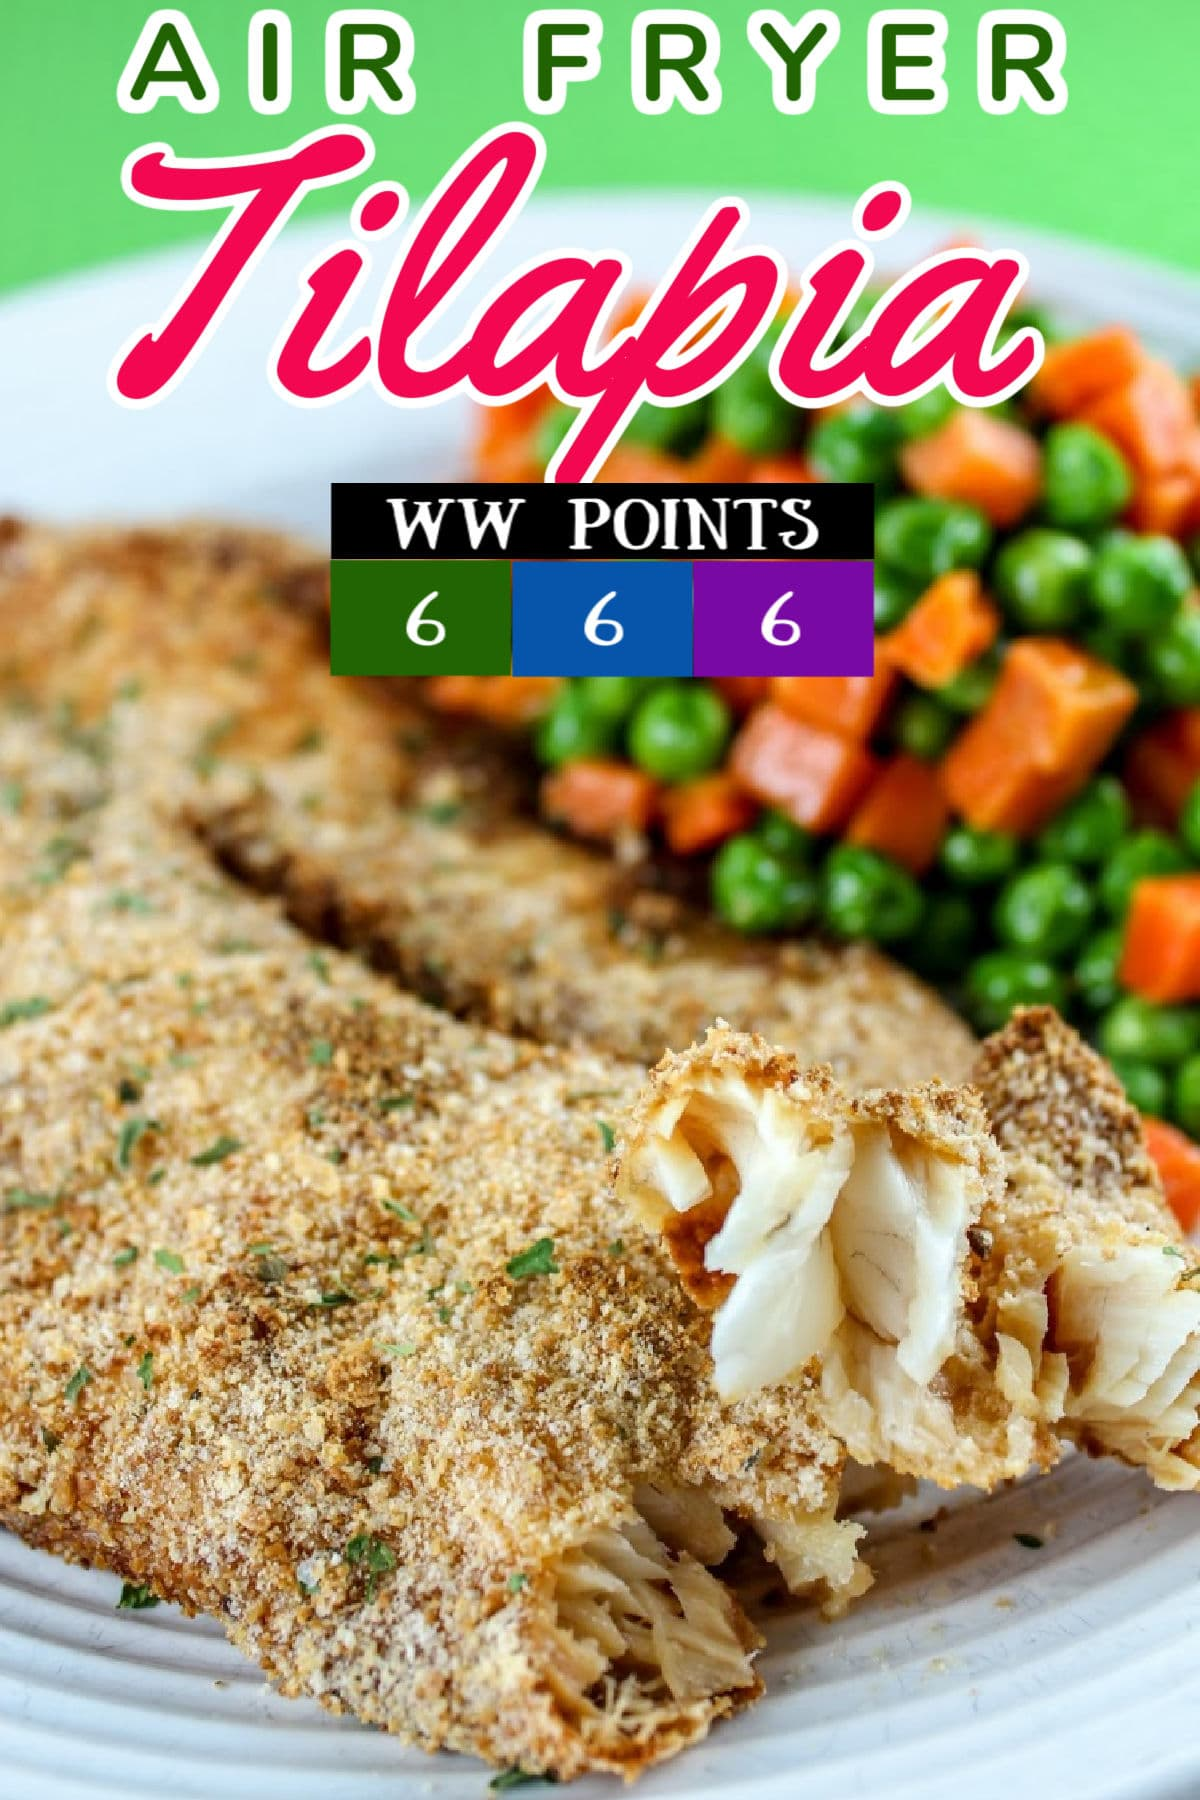 Air fryer tilapia is so simple and easy! It's a fish you can't screw up and it cooks quickly because it's thin. I love it! I used a light breading and made a flavorful crunchy fish dinner in minutes! via @foodhussy